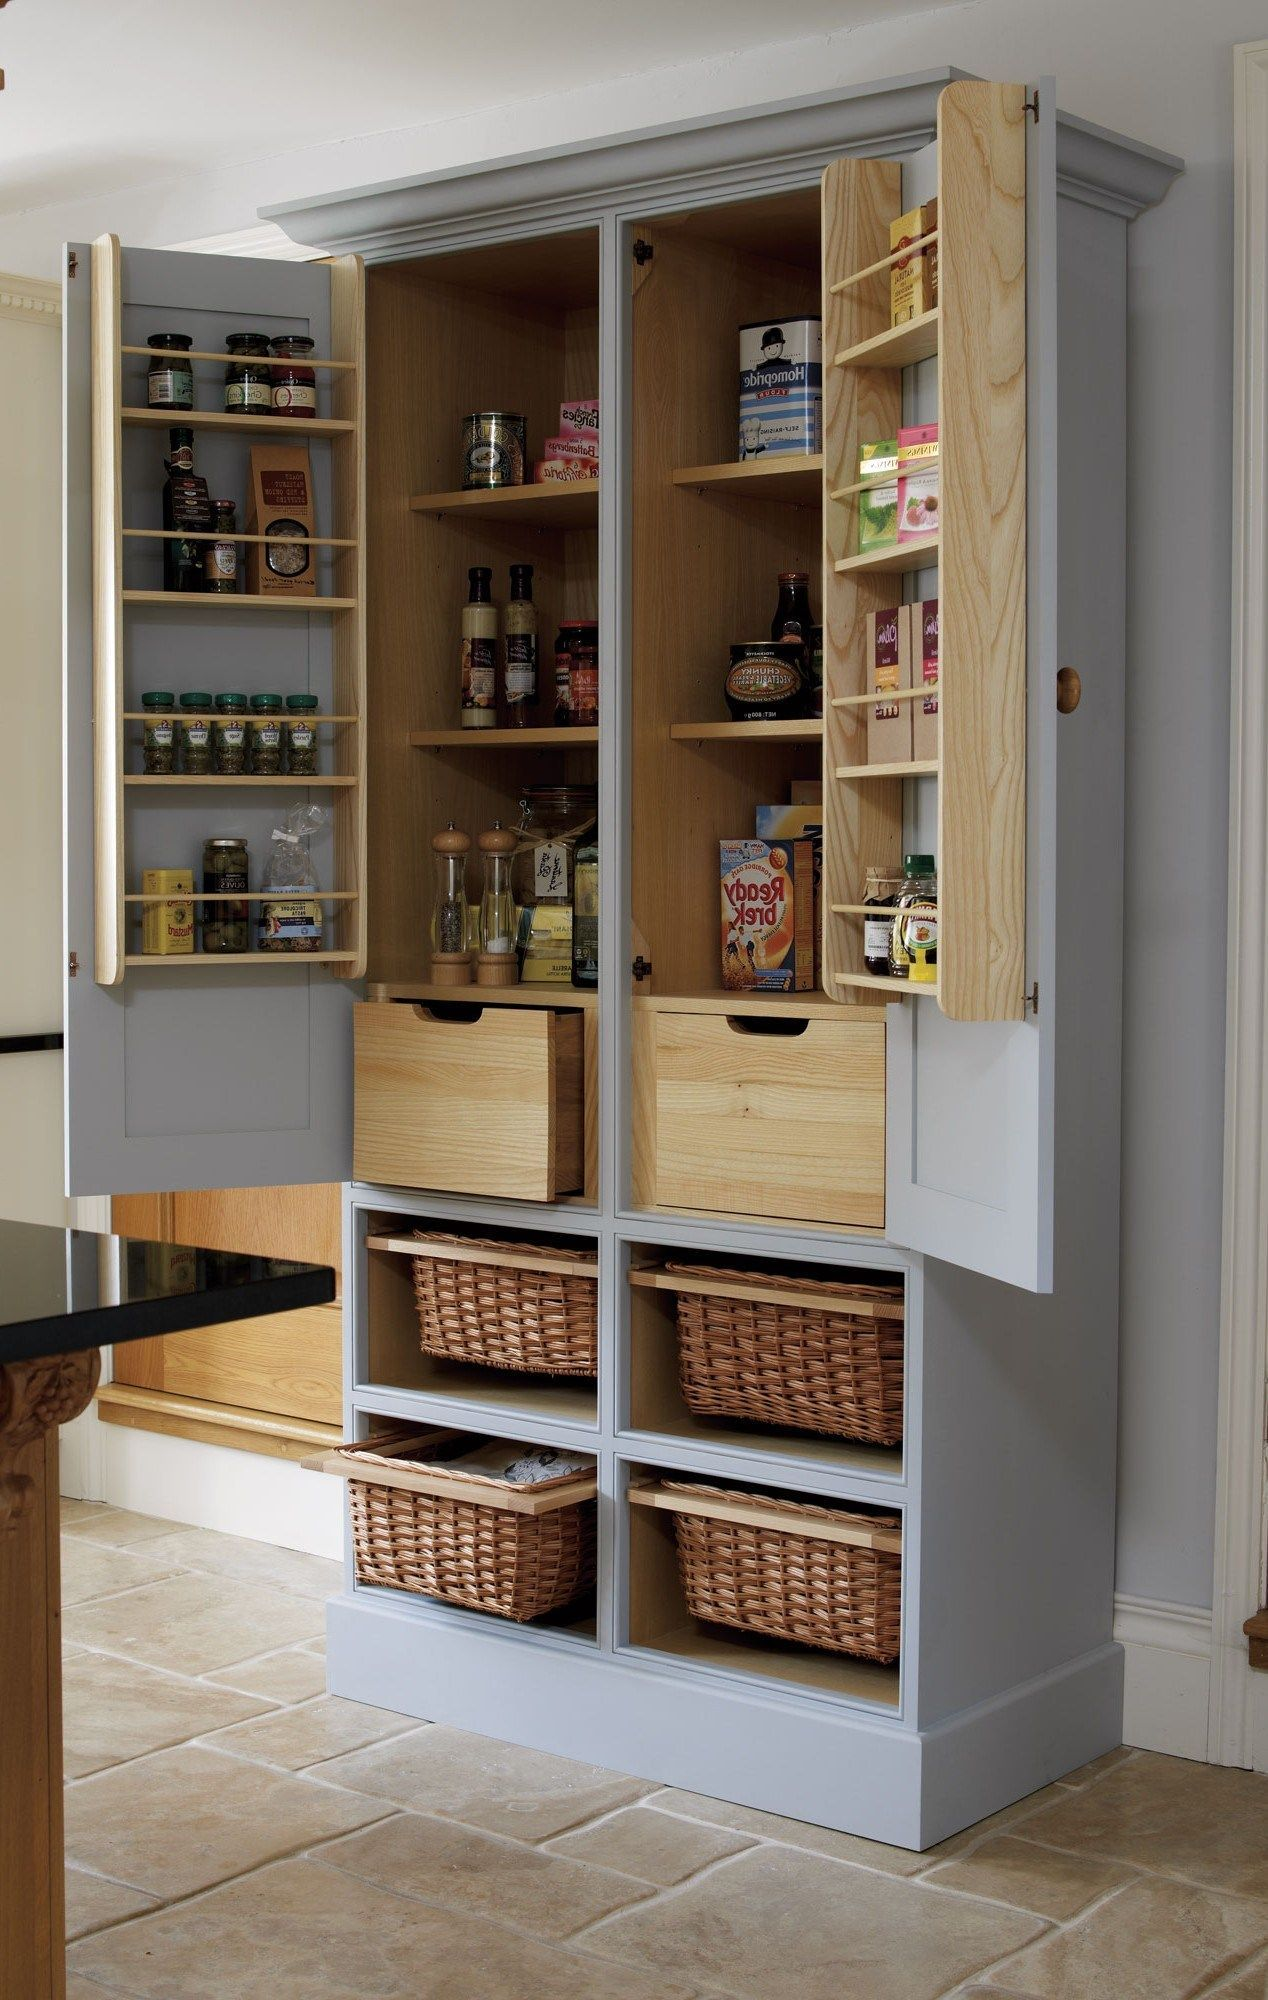 Kitchen Storage Cabinets Spin And Pull Out Storage Cabinets In 2020 Freestanding Kitchen Kitchen Pantry Cabinet Freestanding Free Standing Kitchen Cabinets